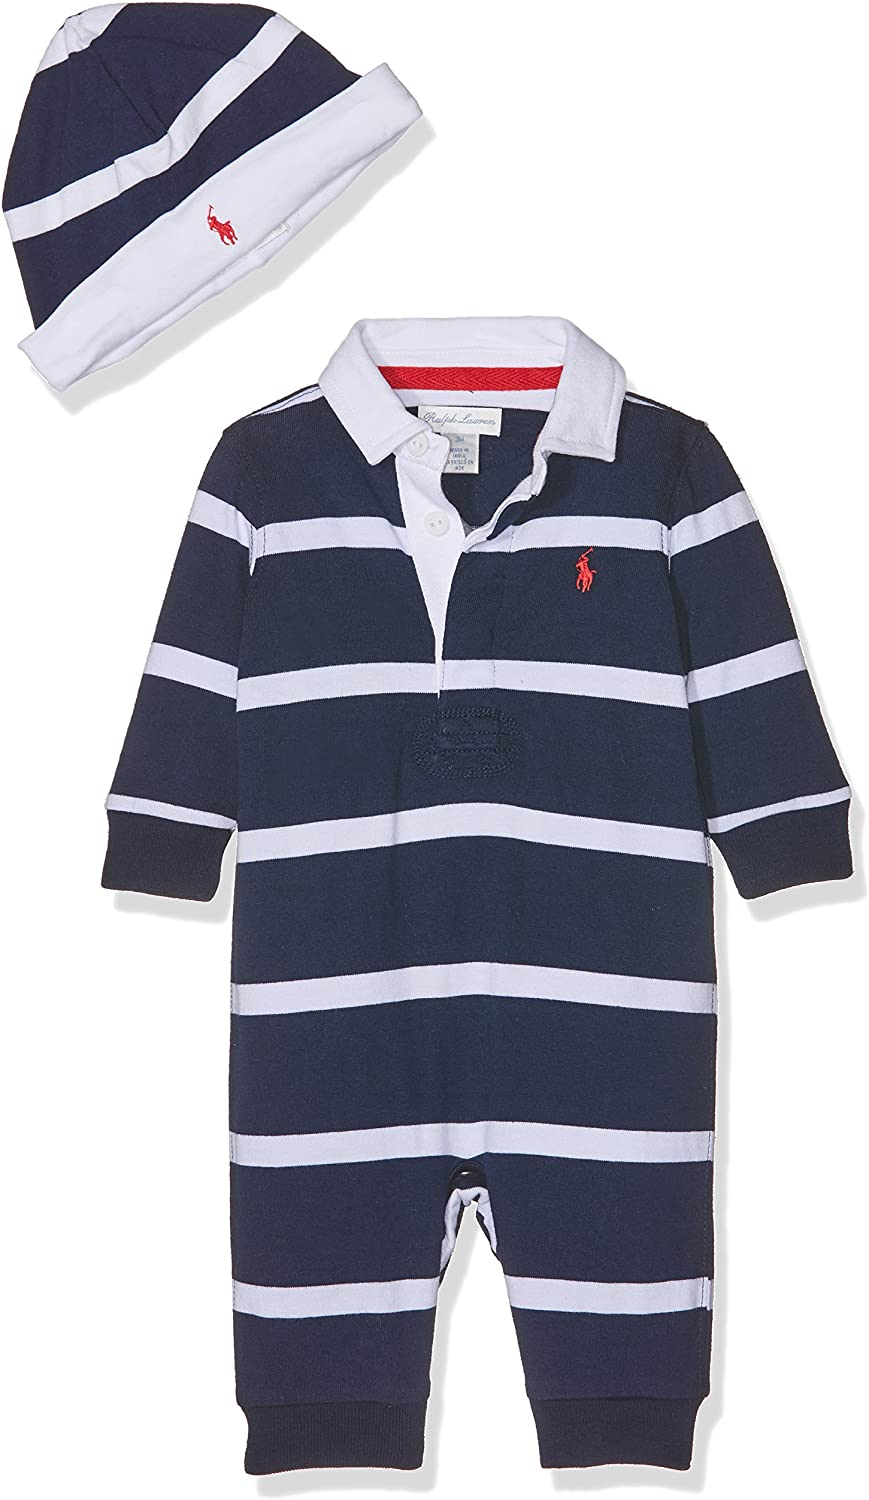 Polo Ralph Lauren Yd Rugby Jersey-AC-GBX Gift Box Set-Pelele ...